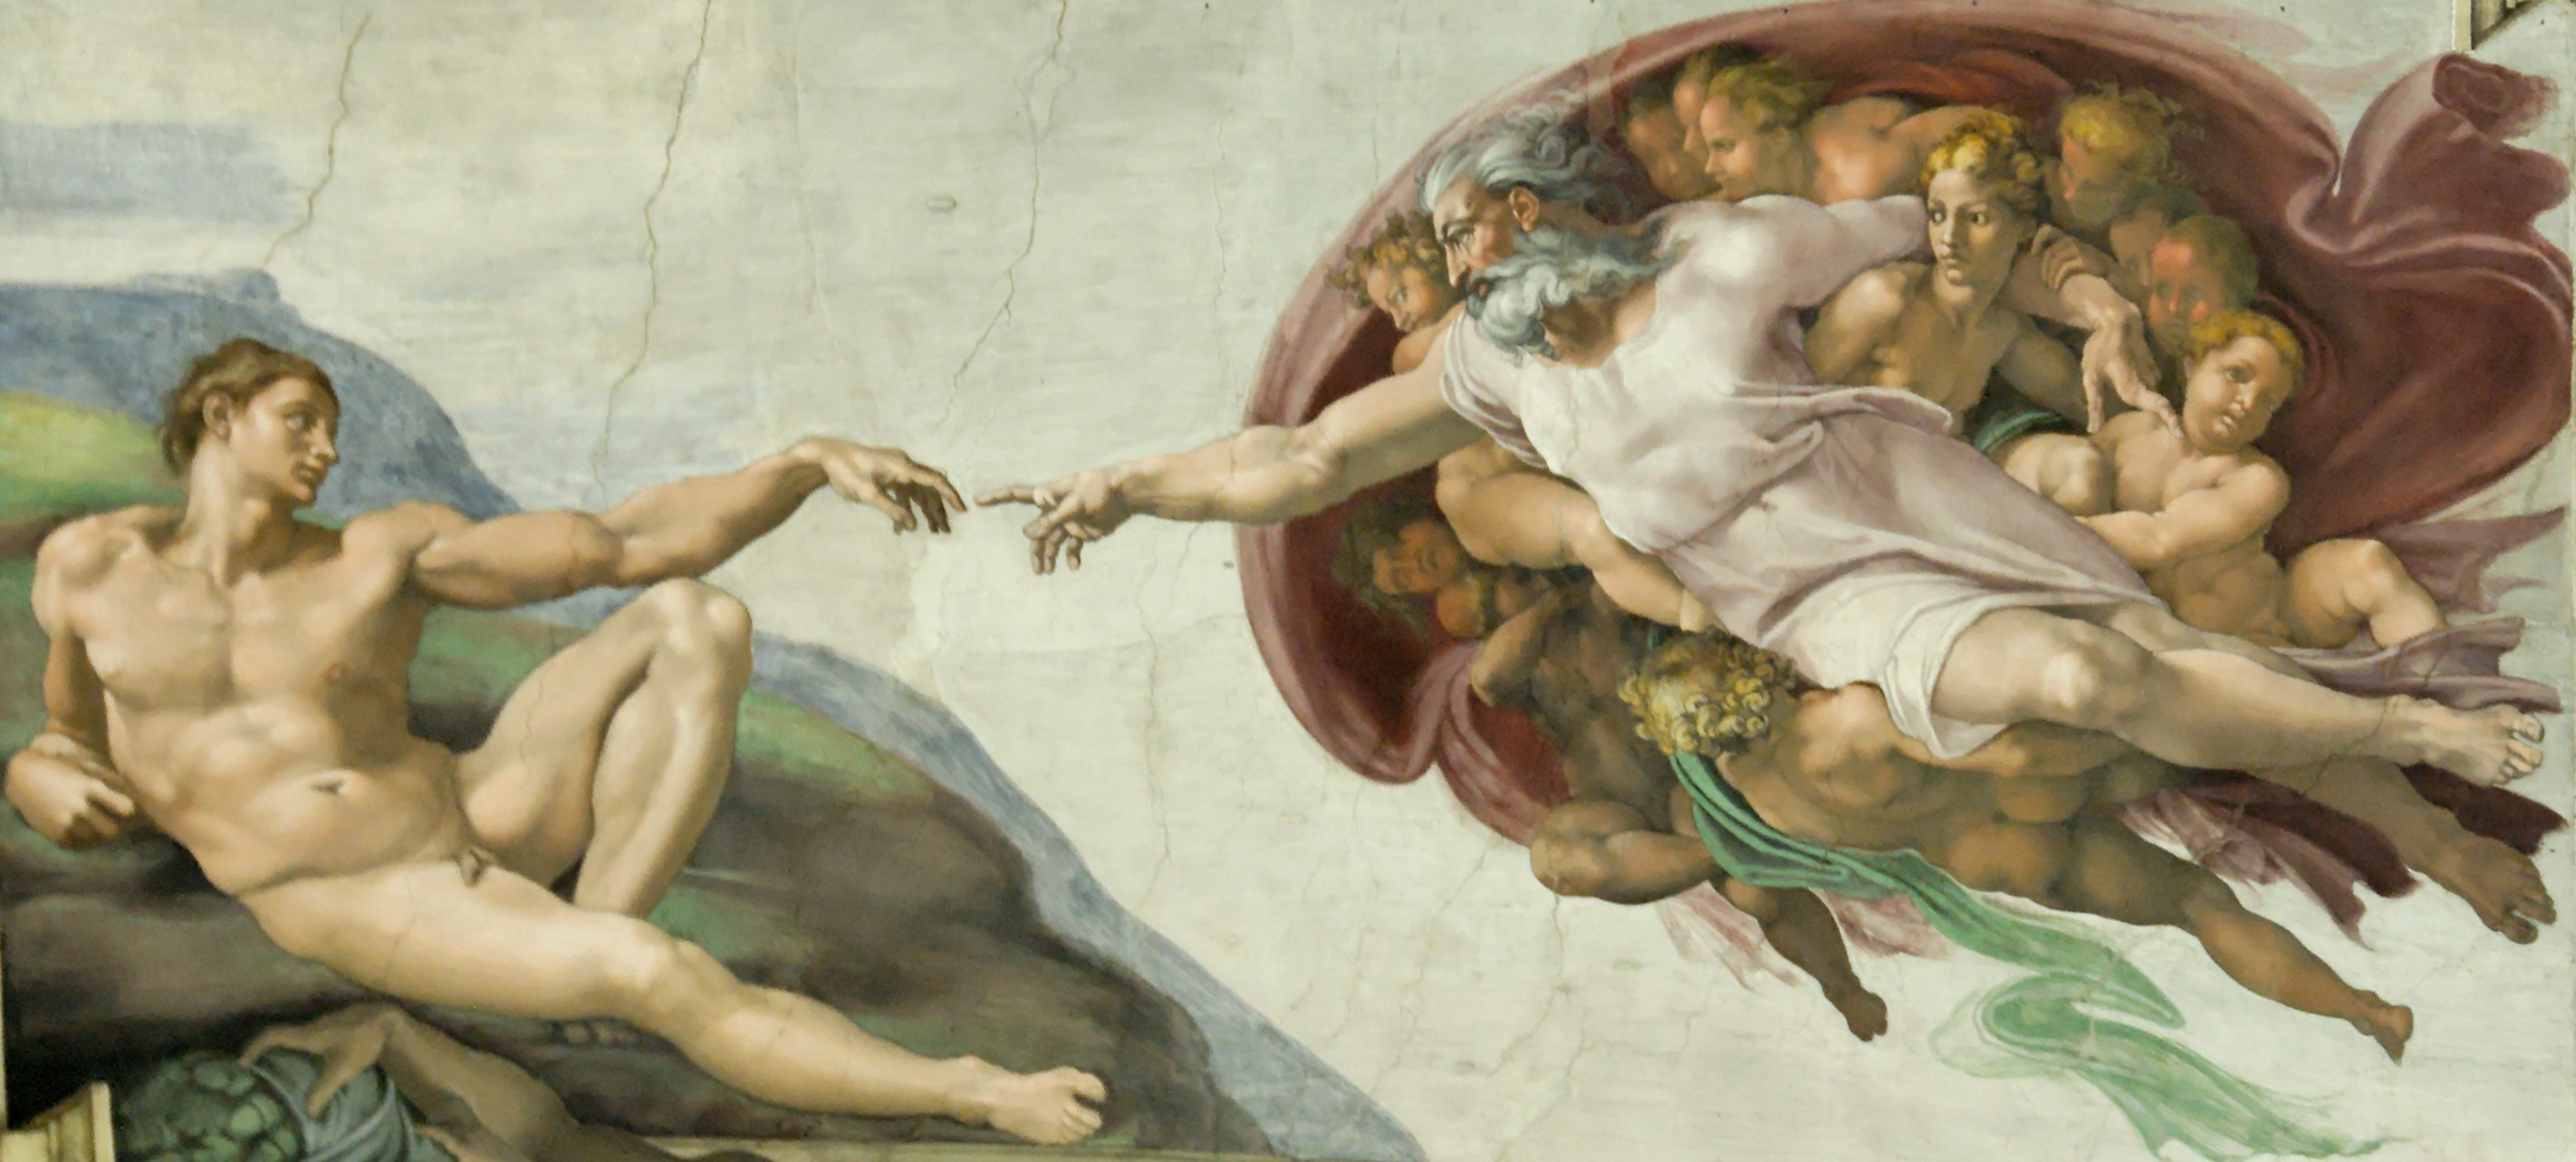 an introduction to the analysis of michelangelo sistine chapel ceiling The measure of genius: michelangelo's sistine chapel at 500 michelangelo began painting the ceiling frescoes in rome's sistine chapel in 1509.